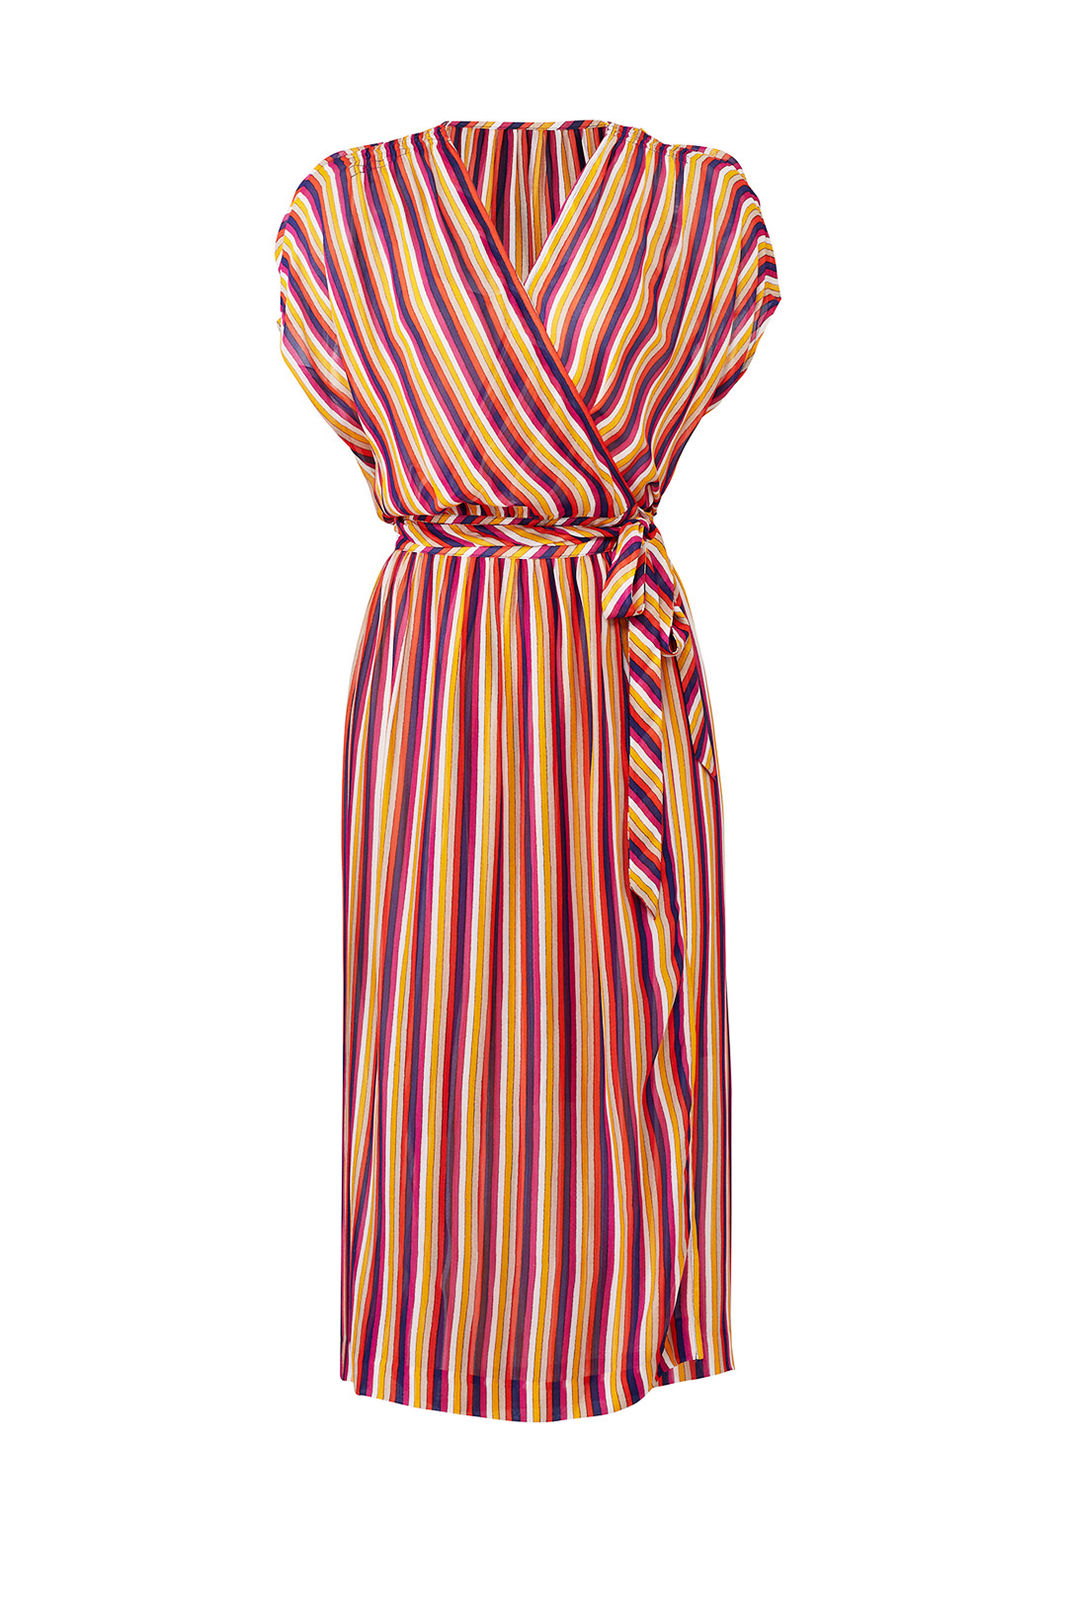 d2a7ca830007 Details about Trina Turk Red Striped Midi Crepe Women s Size Small S Wrap  Dress  298-  827